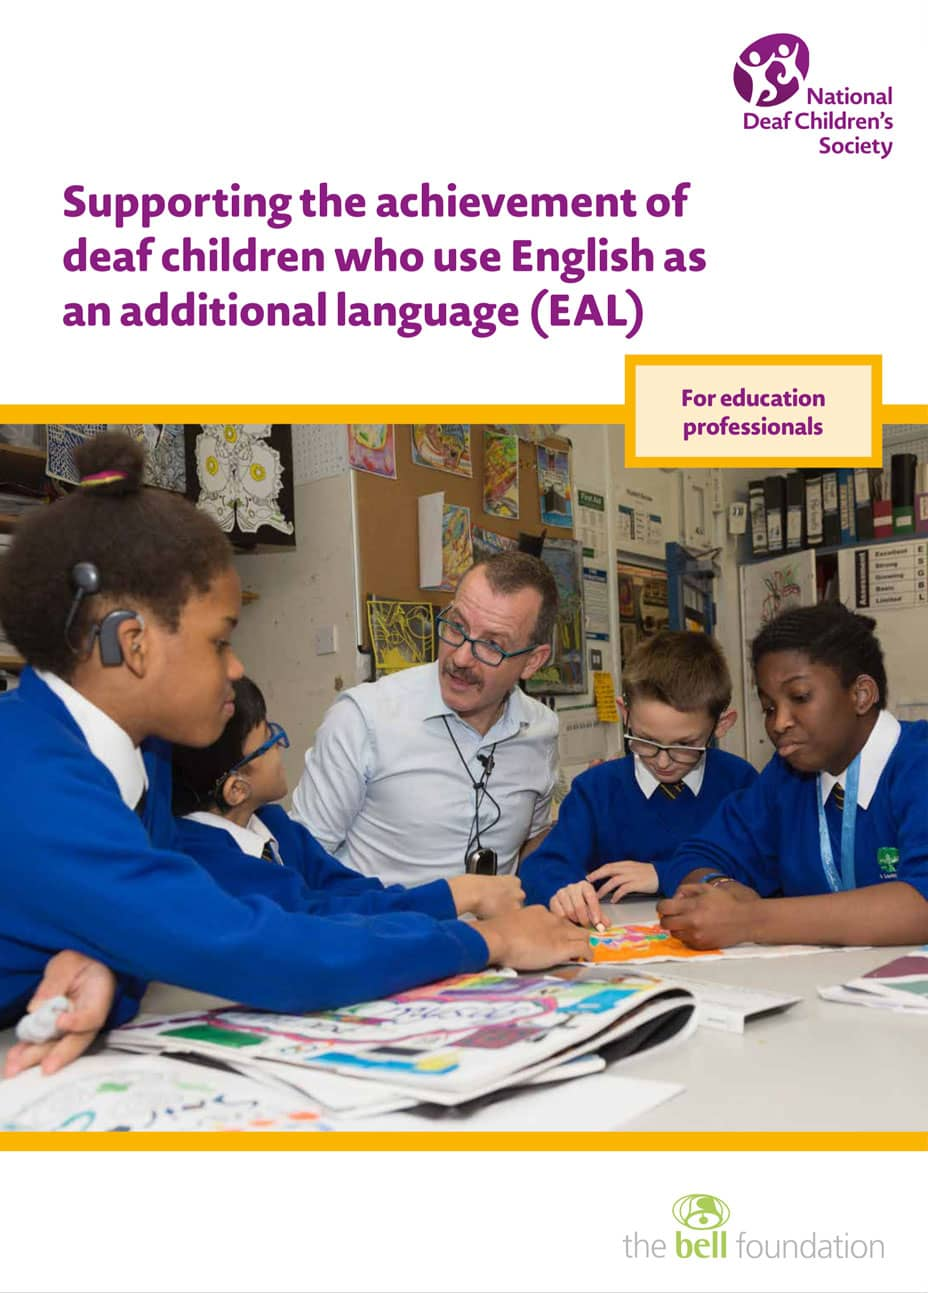 Supporting the achievement of deaf children who use English as an additional language (EAL)